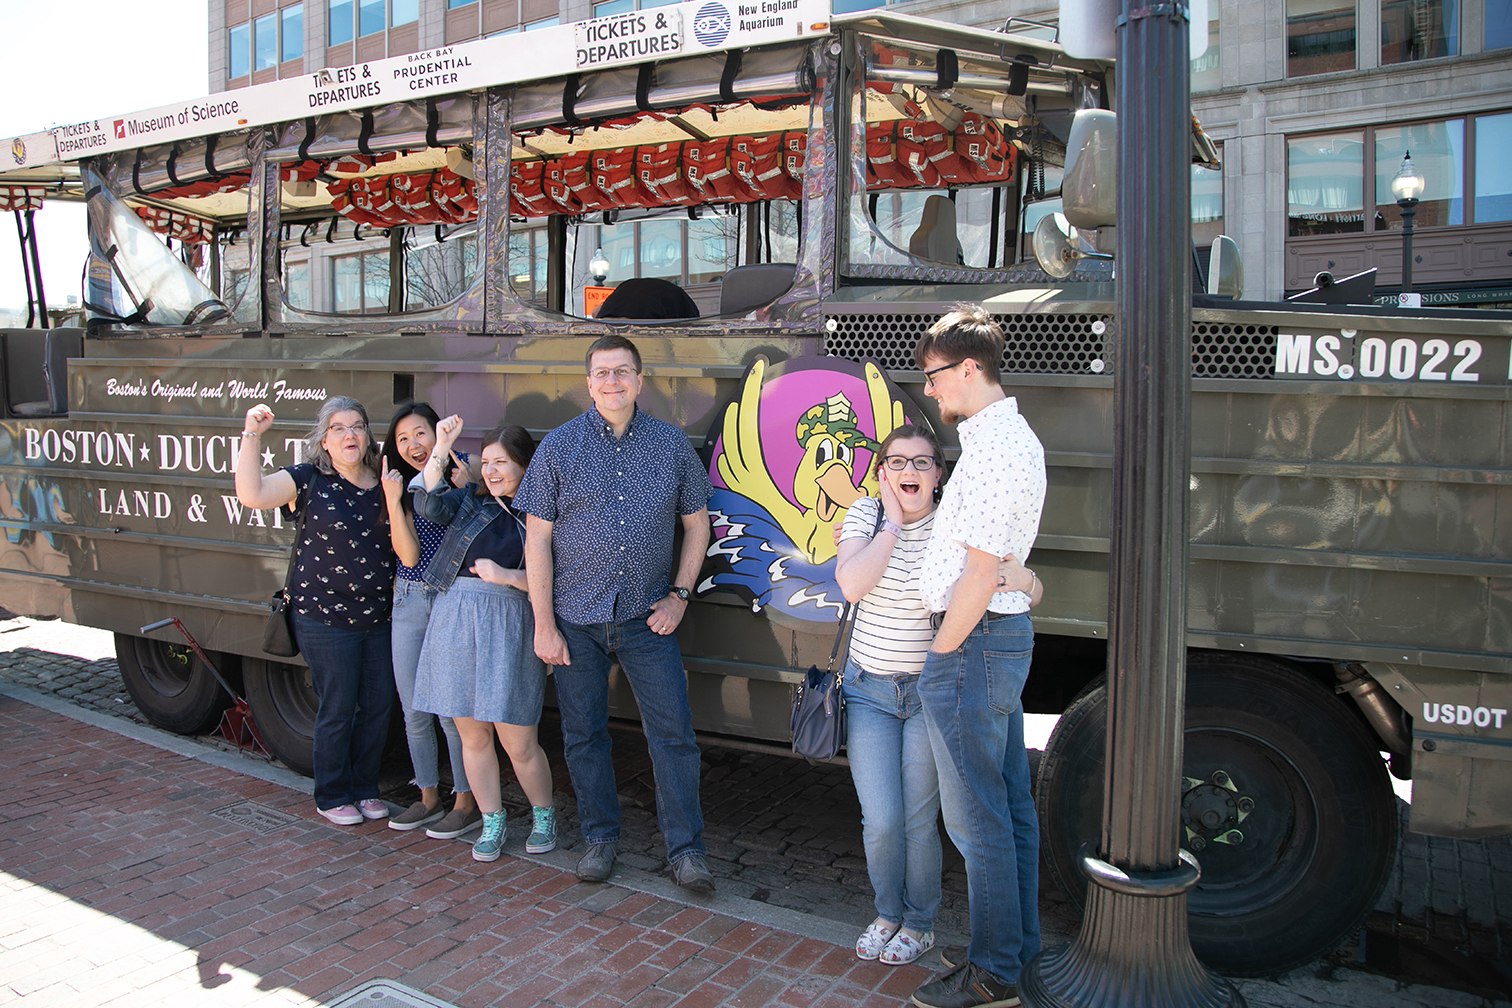 family posing by duck boat